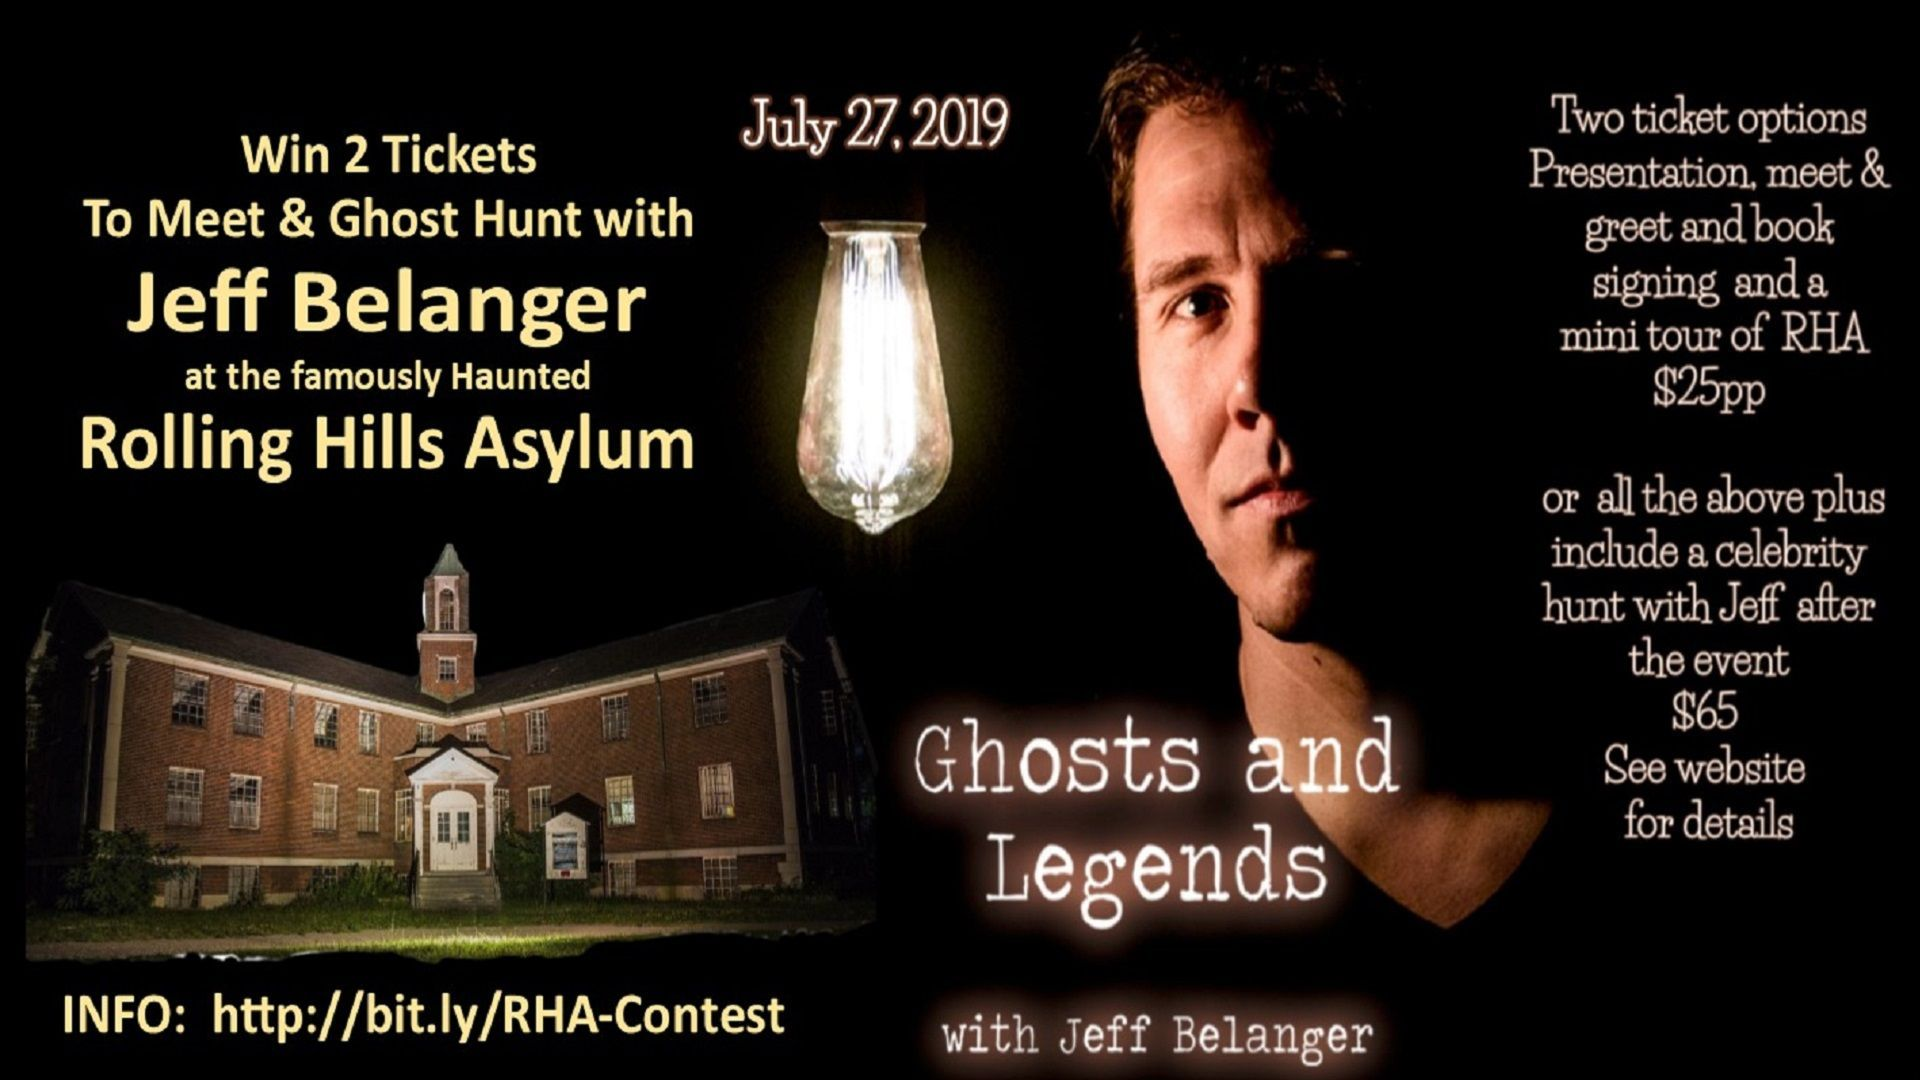 Win Tickets to Ghost Hunt with Jeff Belanger at RHA!